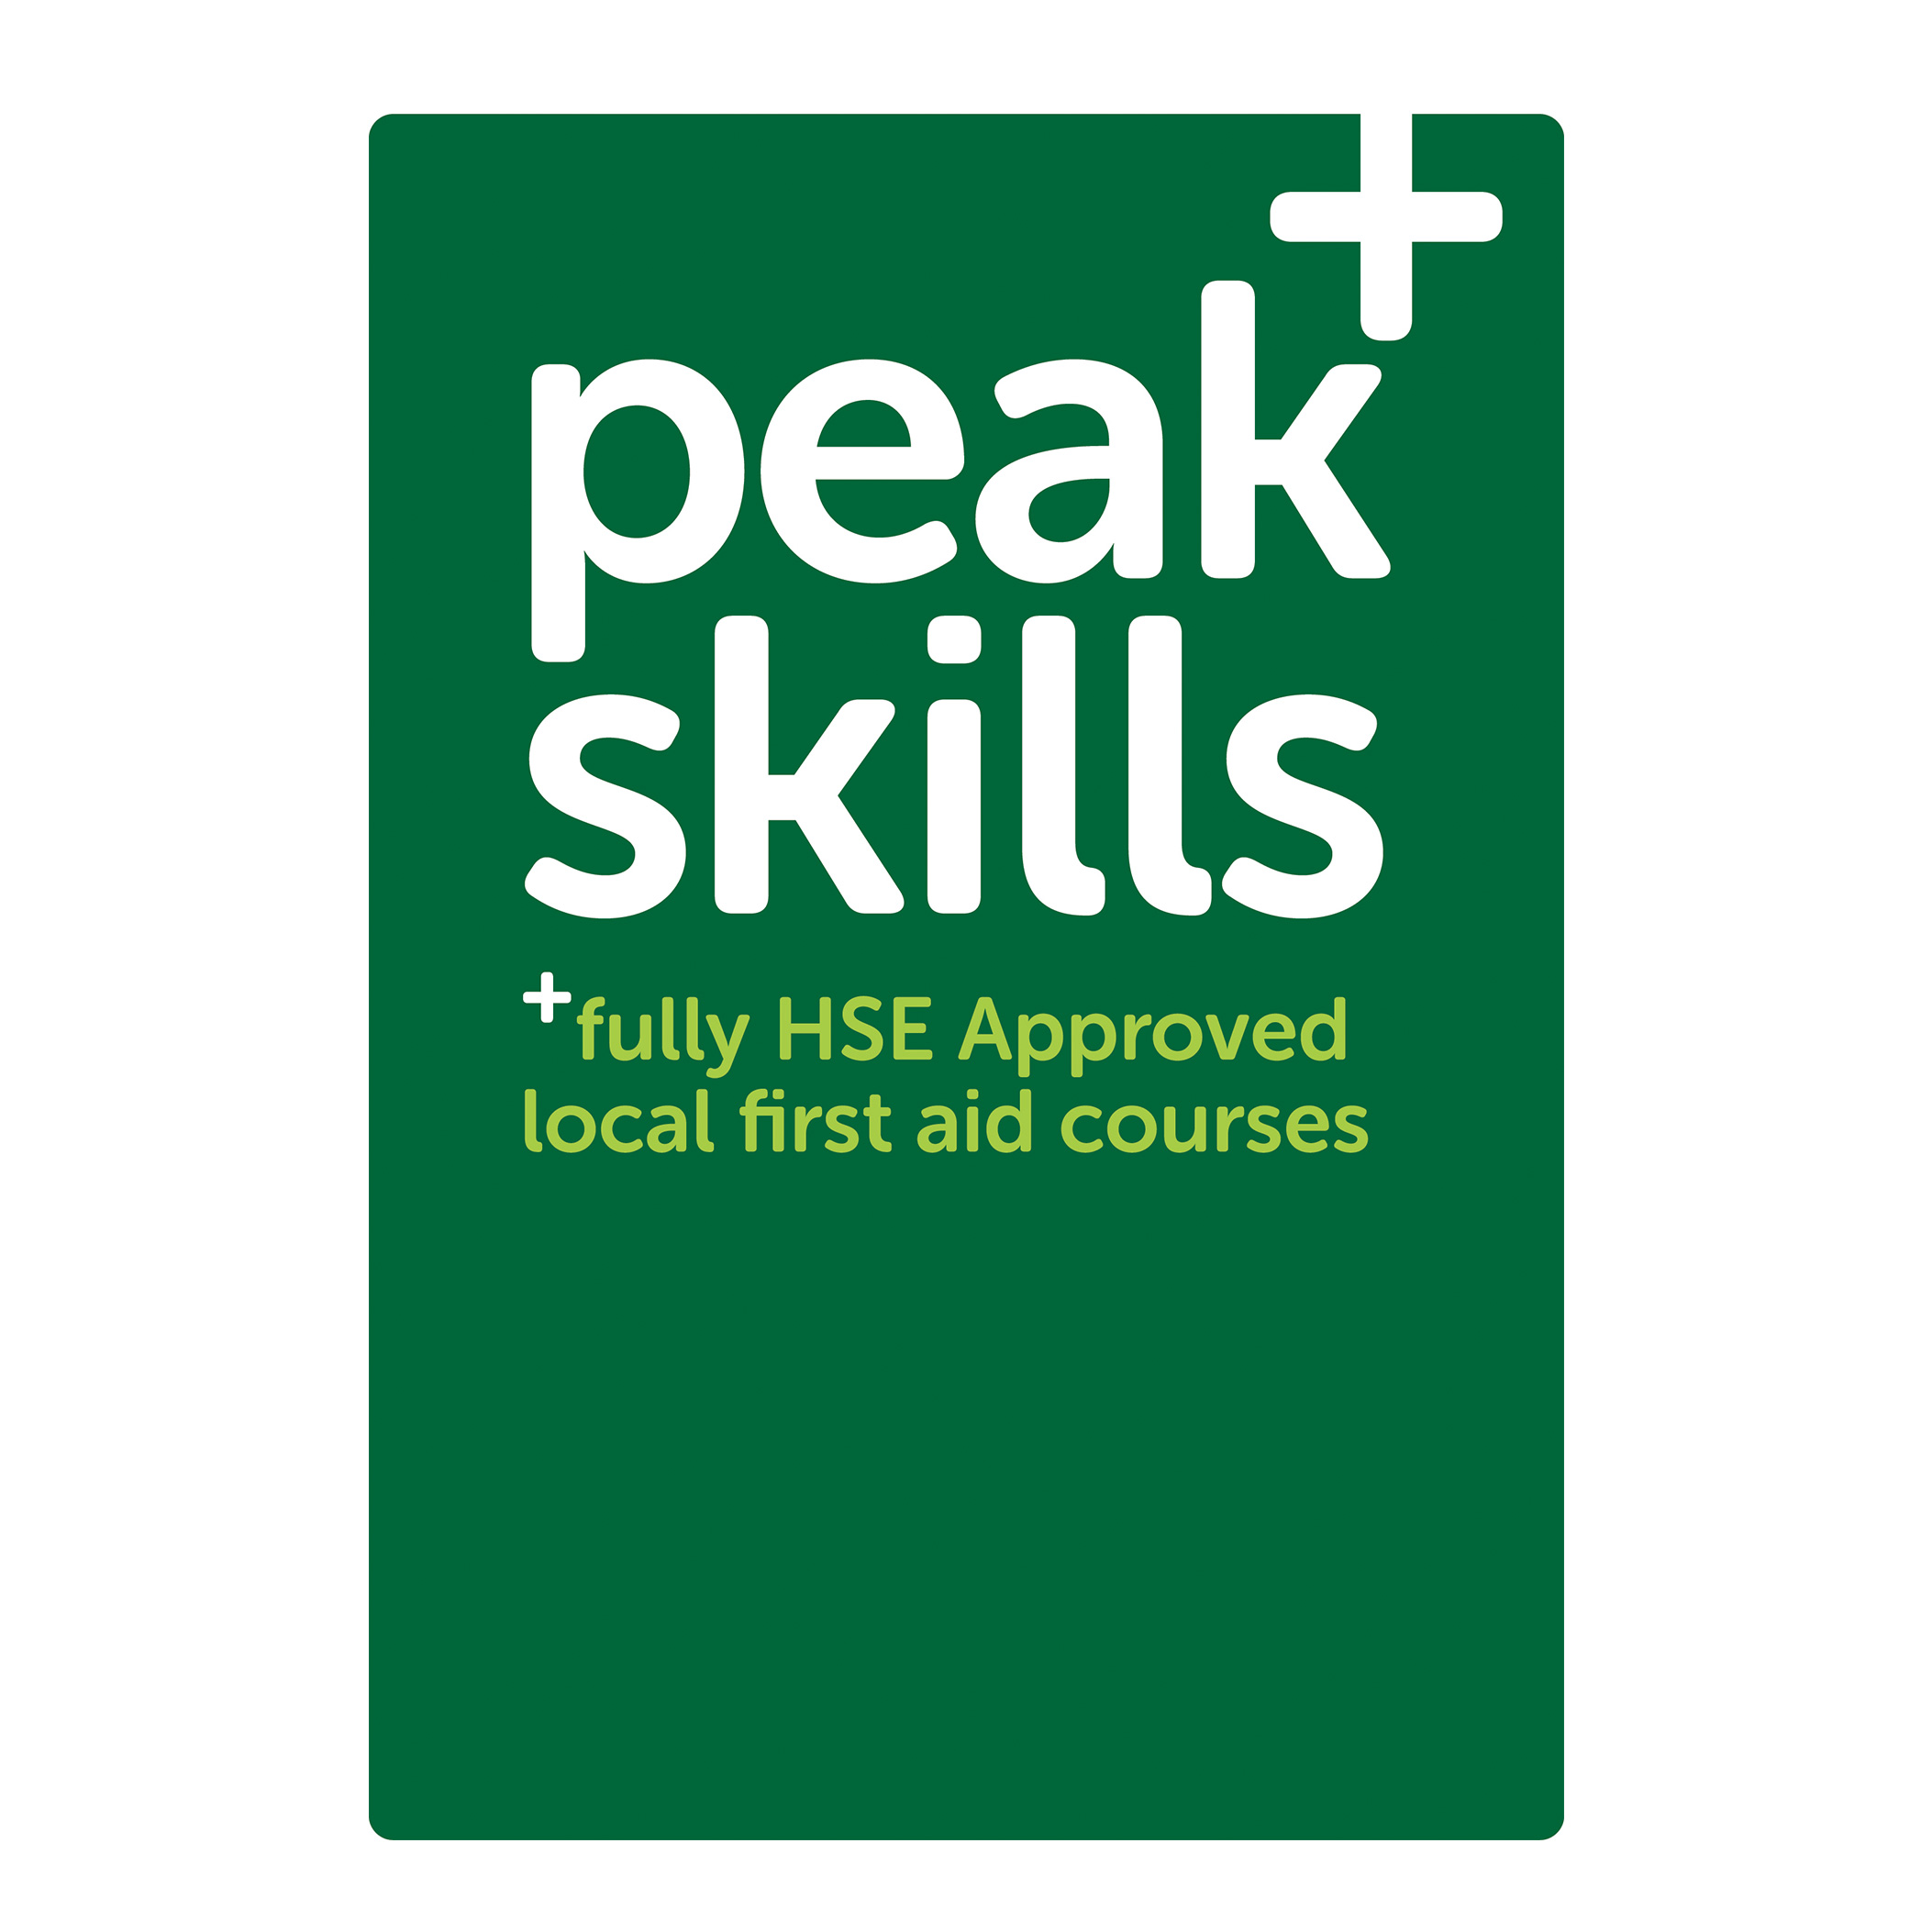 Local first aid course specialists